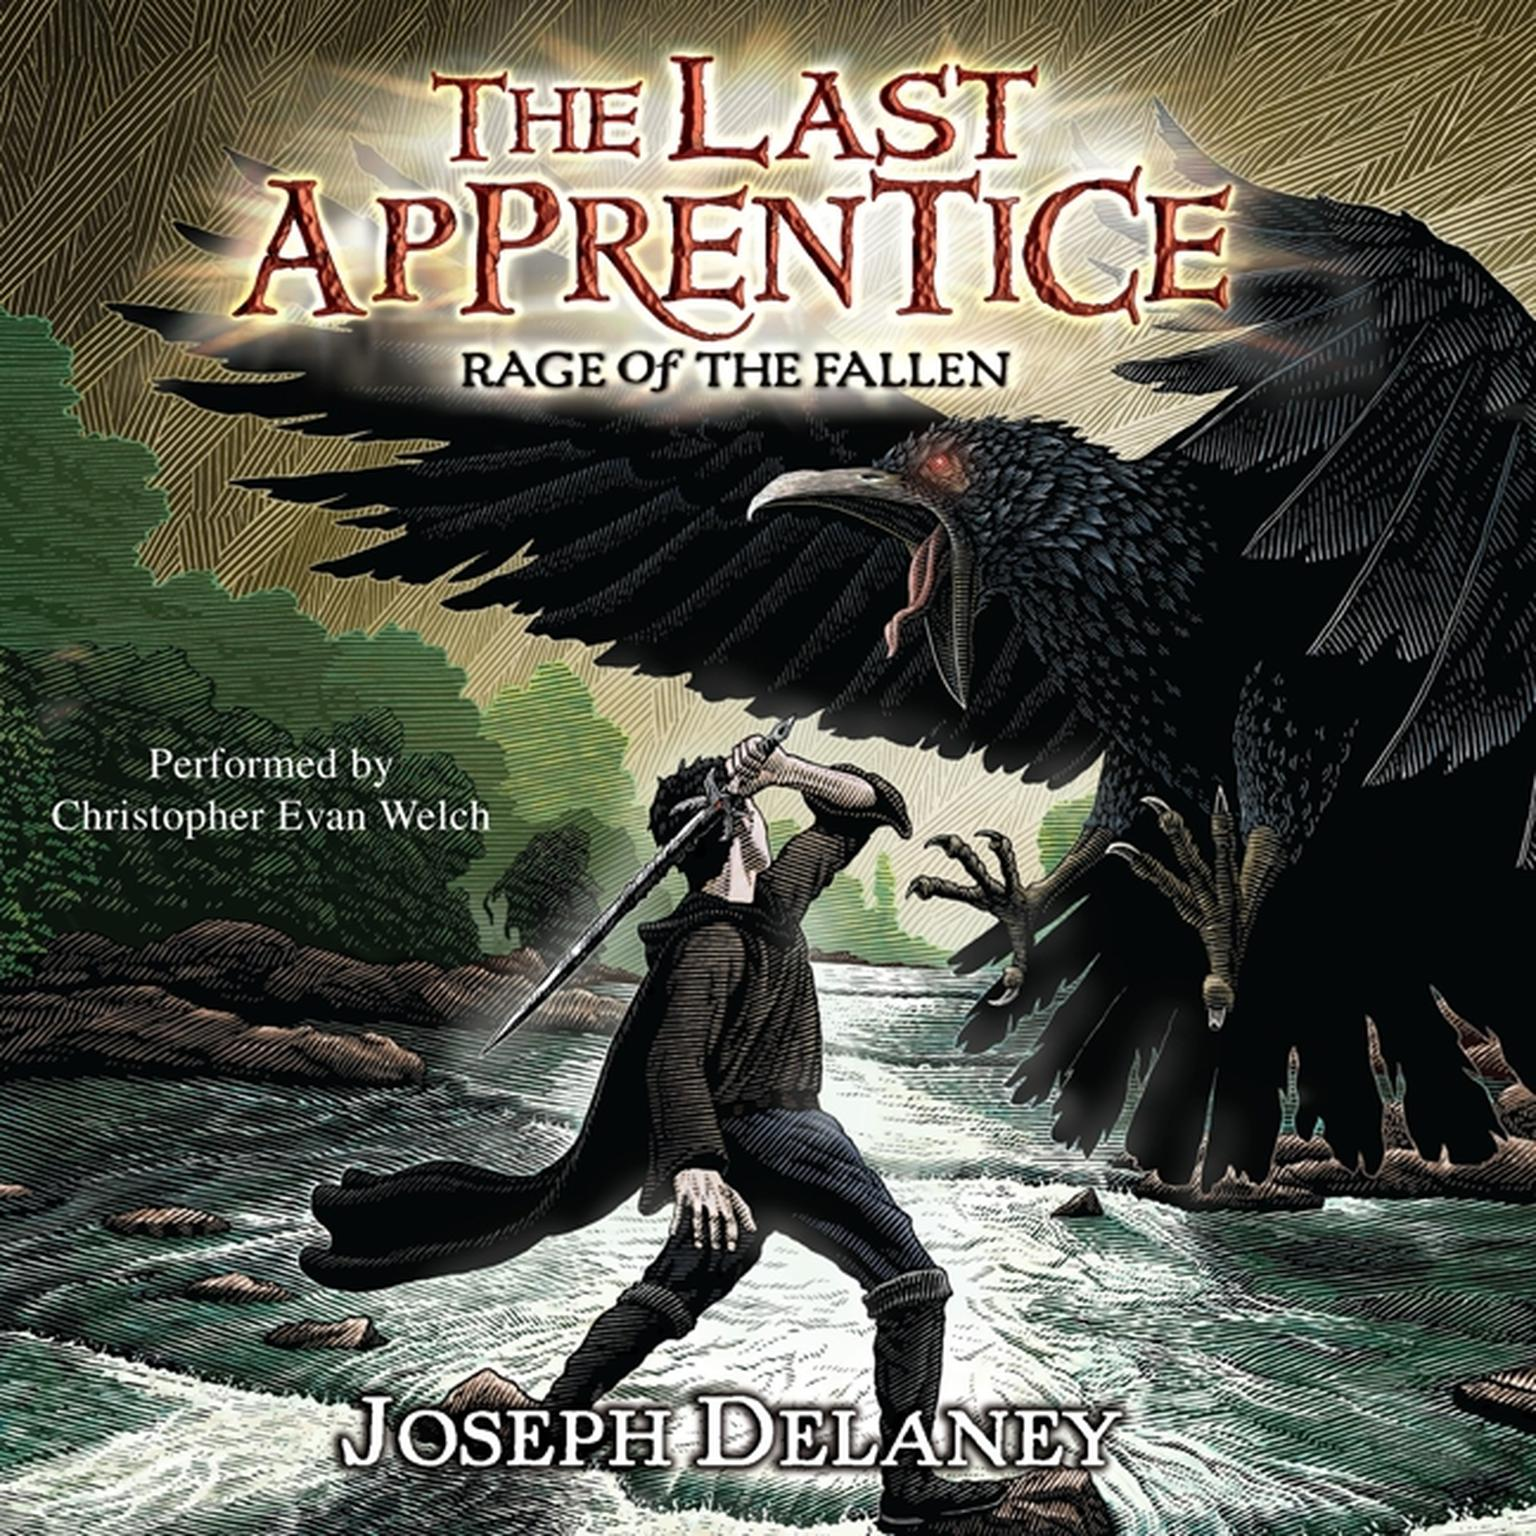 Printable The Last Apprentice: Rage of the Fallen (Book 8) Audiobook Cover Art